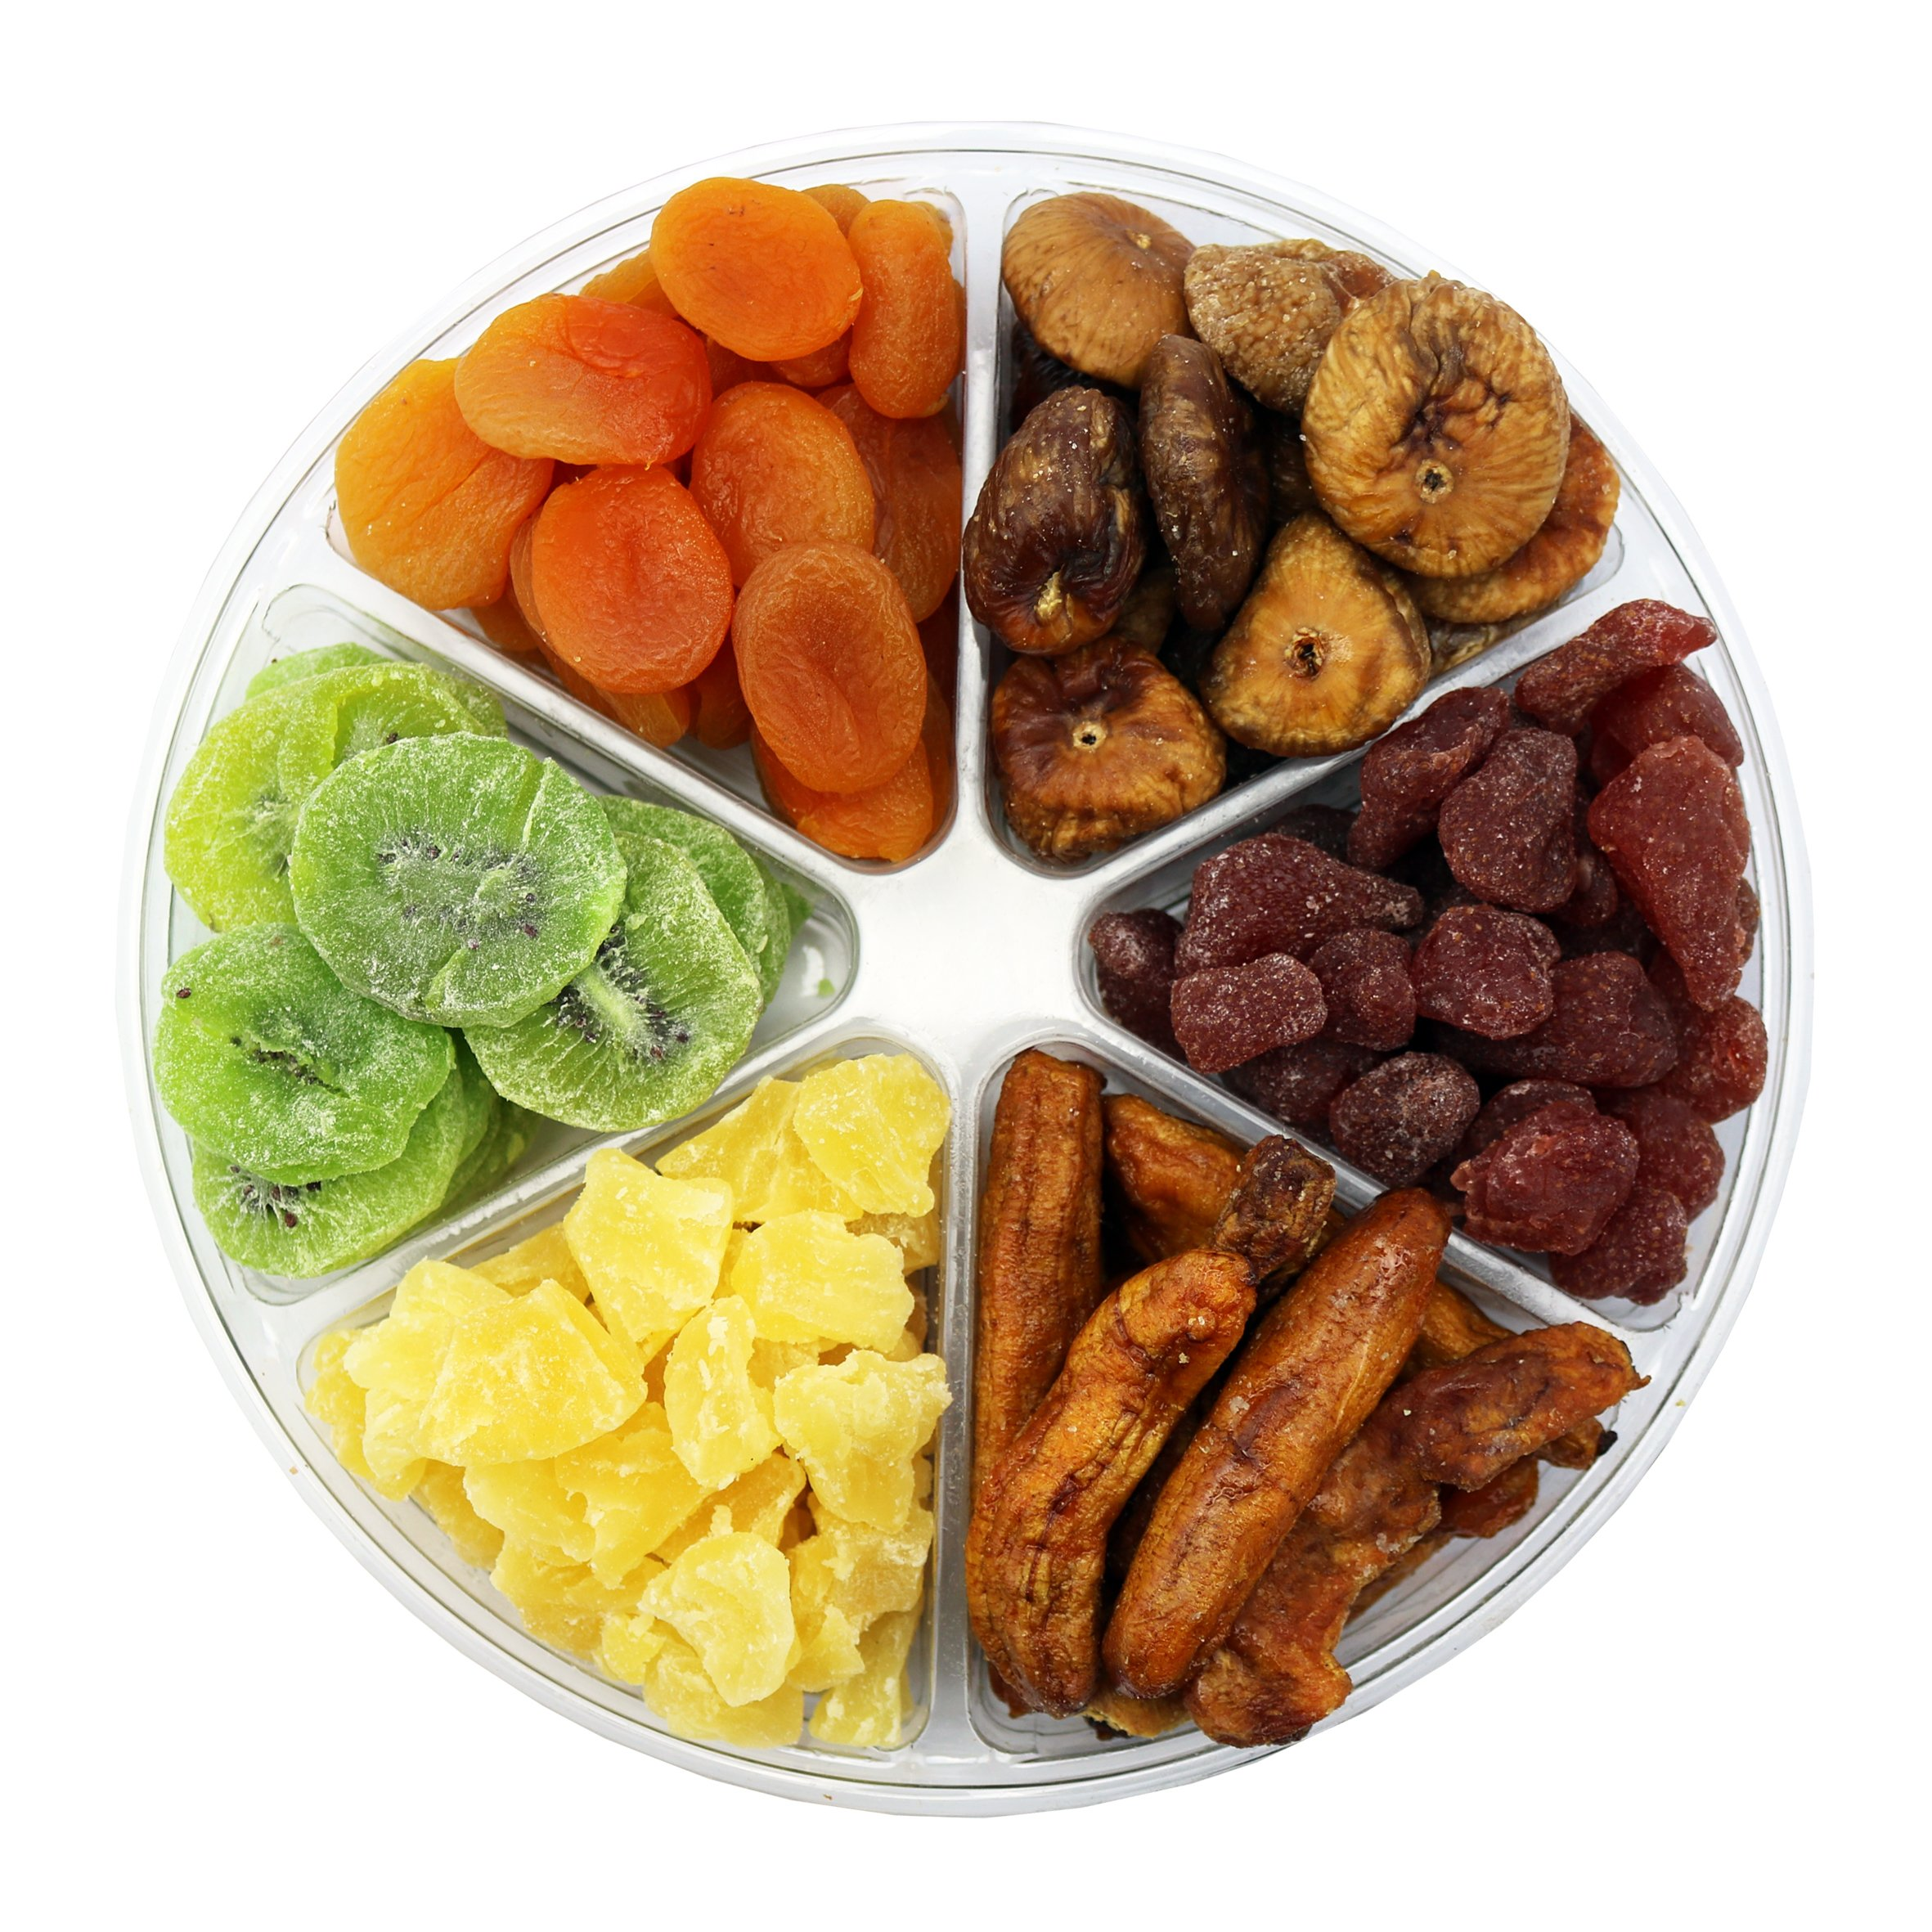 Dried Fruit Deluxe Gift Tray, 6 Section Collection of Fresh Fruits By FirstChoiceCandy by First Choice Candy (Image #1)